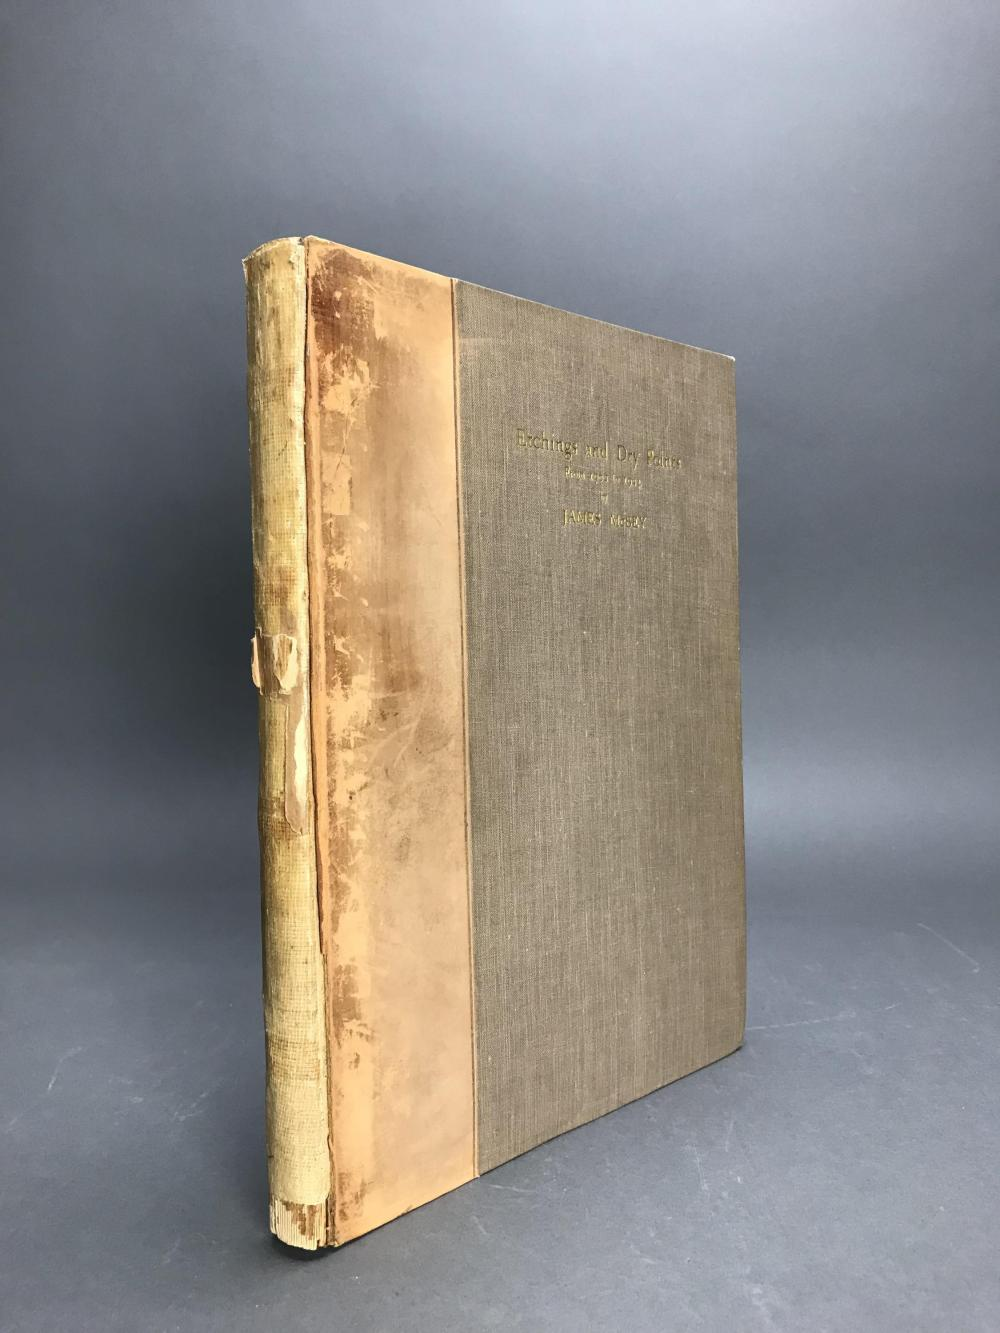 Lot 463: James McBey Catalogue Raisonne. 1925.